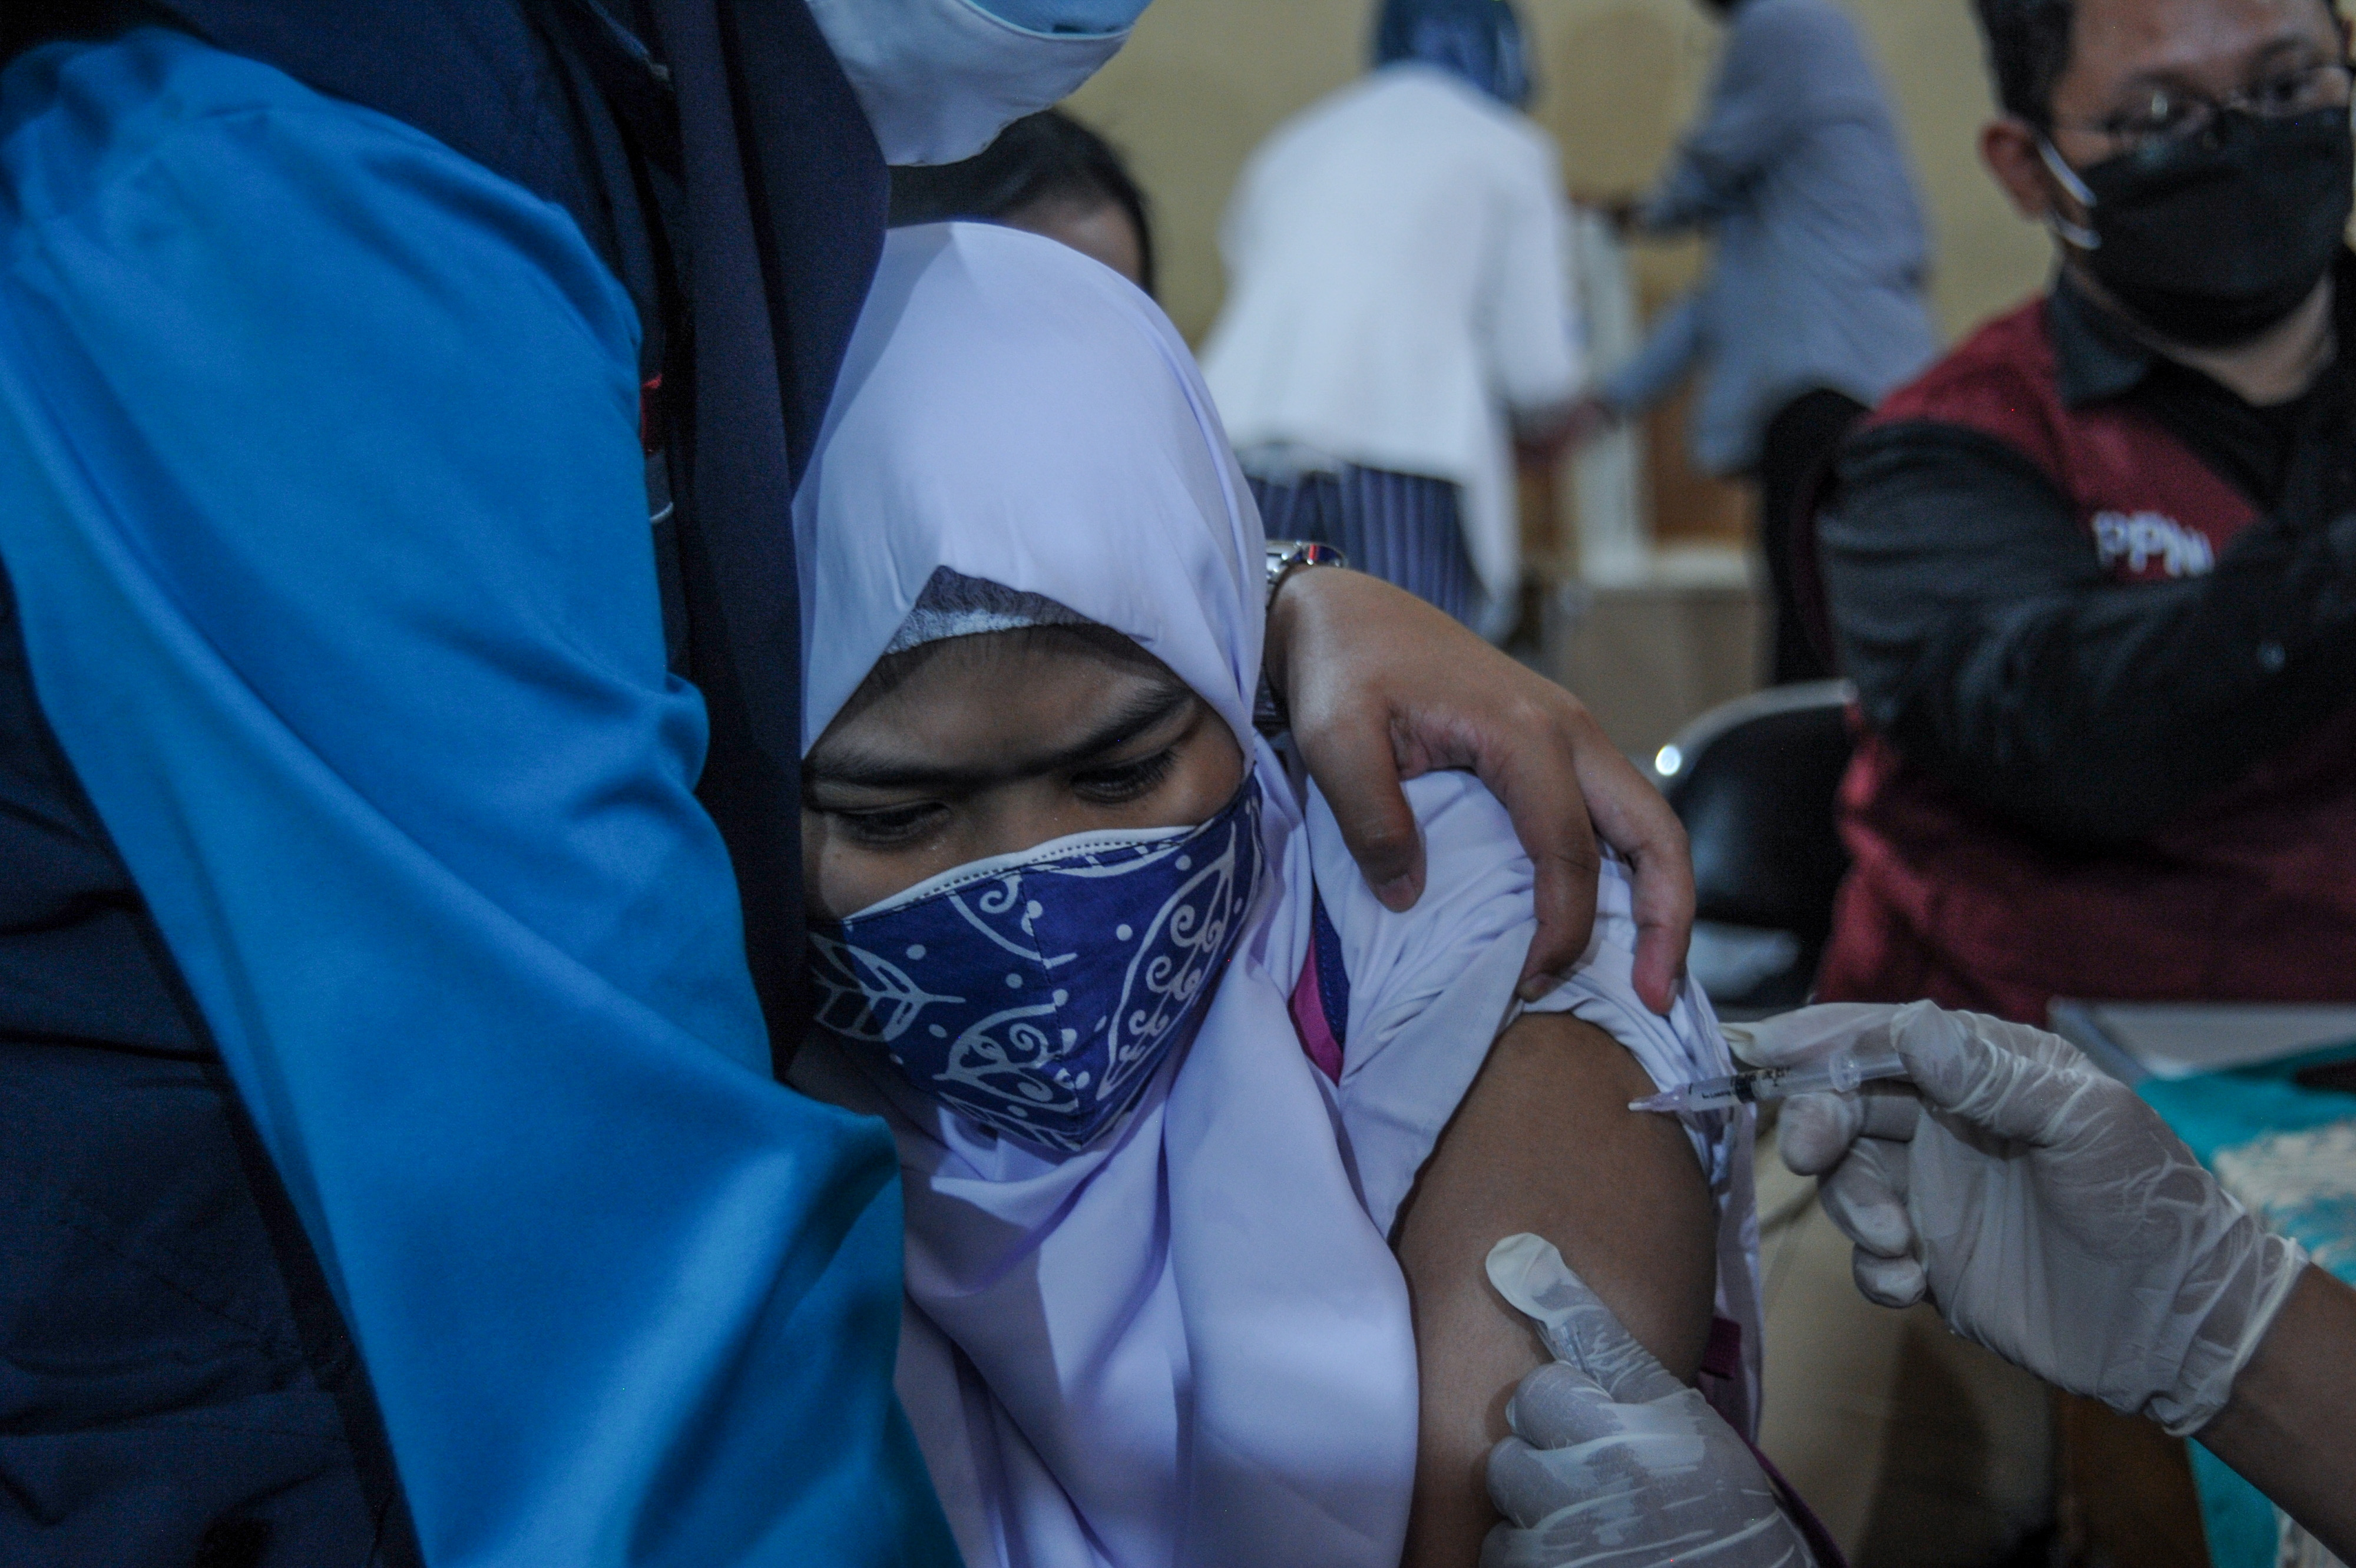 A student reacts as she receives a vaccine against the coronavirus disease (COVID-19) during a mass vaccination program for students as COVID-19 cases surge, in Bandung, West Java Province Indonesia July 14, 2021. Antara Foto/Raisan Al Farisi/via REUTERS